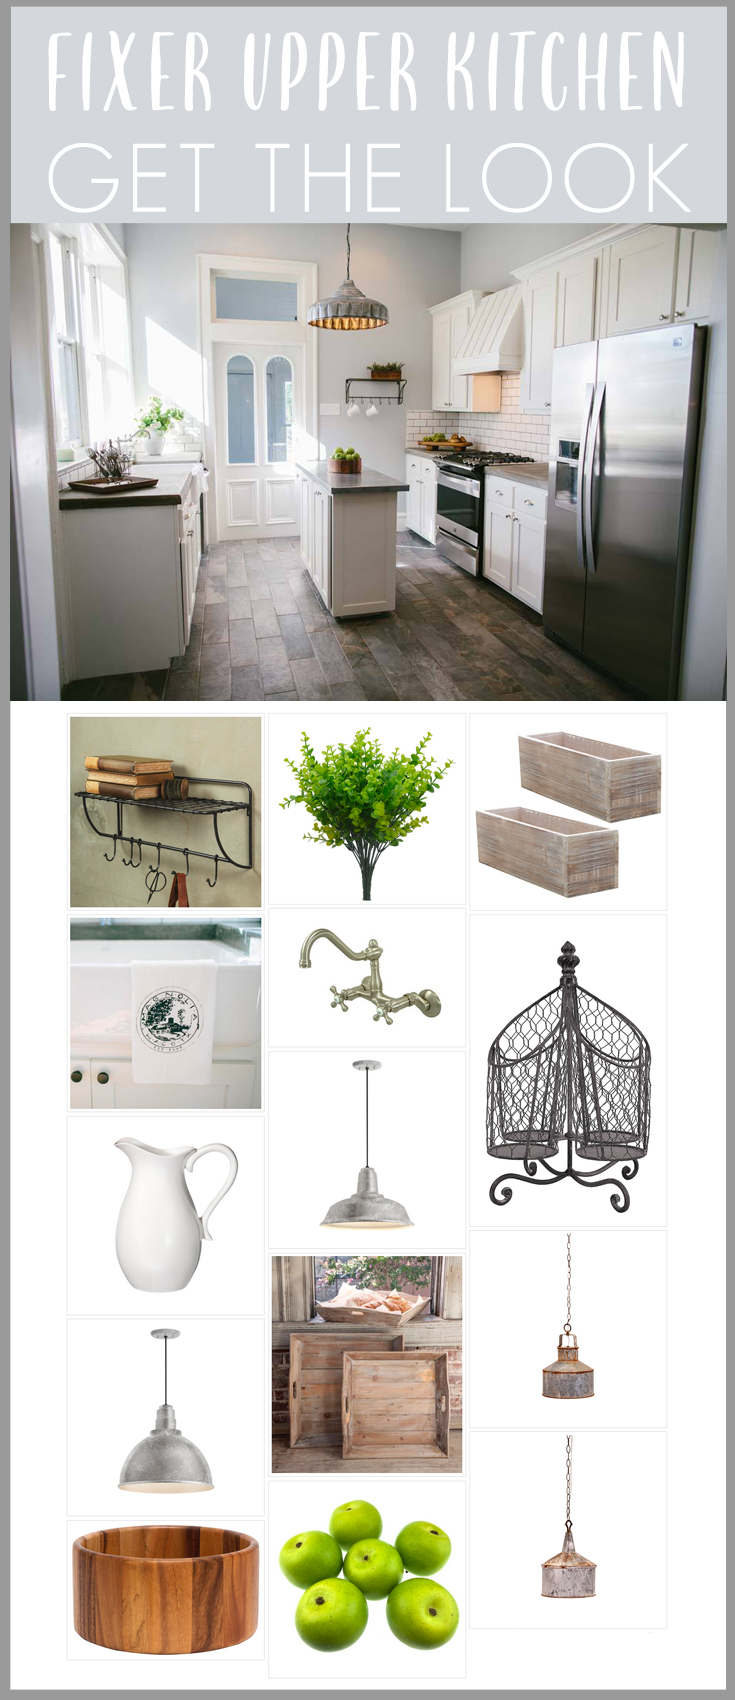 Fixer Upper Season 1 Episode 12 Kitchen room recreation! Full list of decor sources for the 5th Street Story!